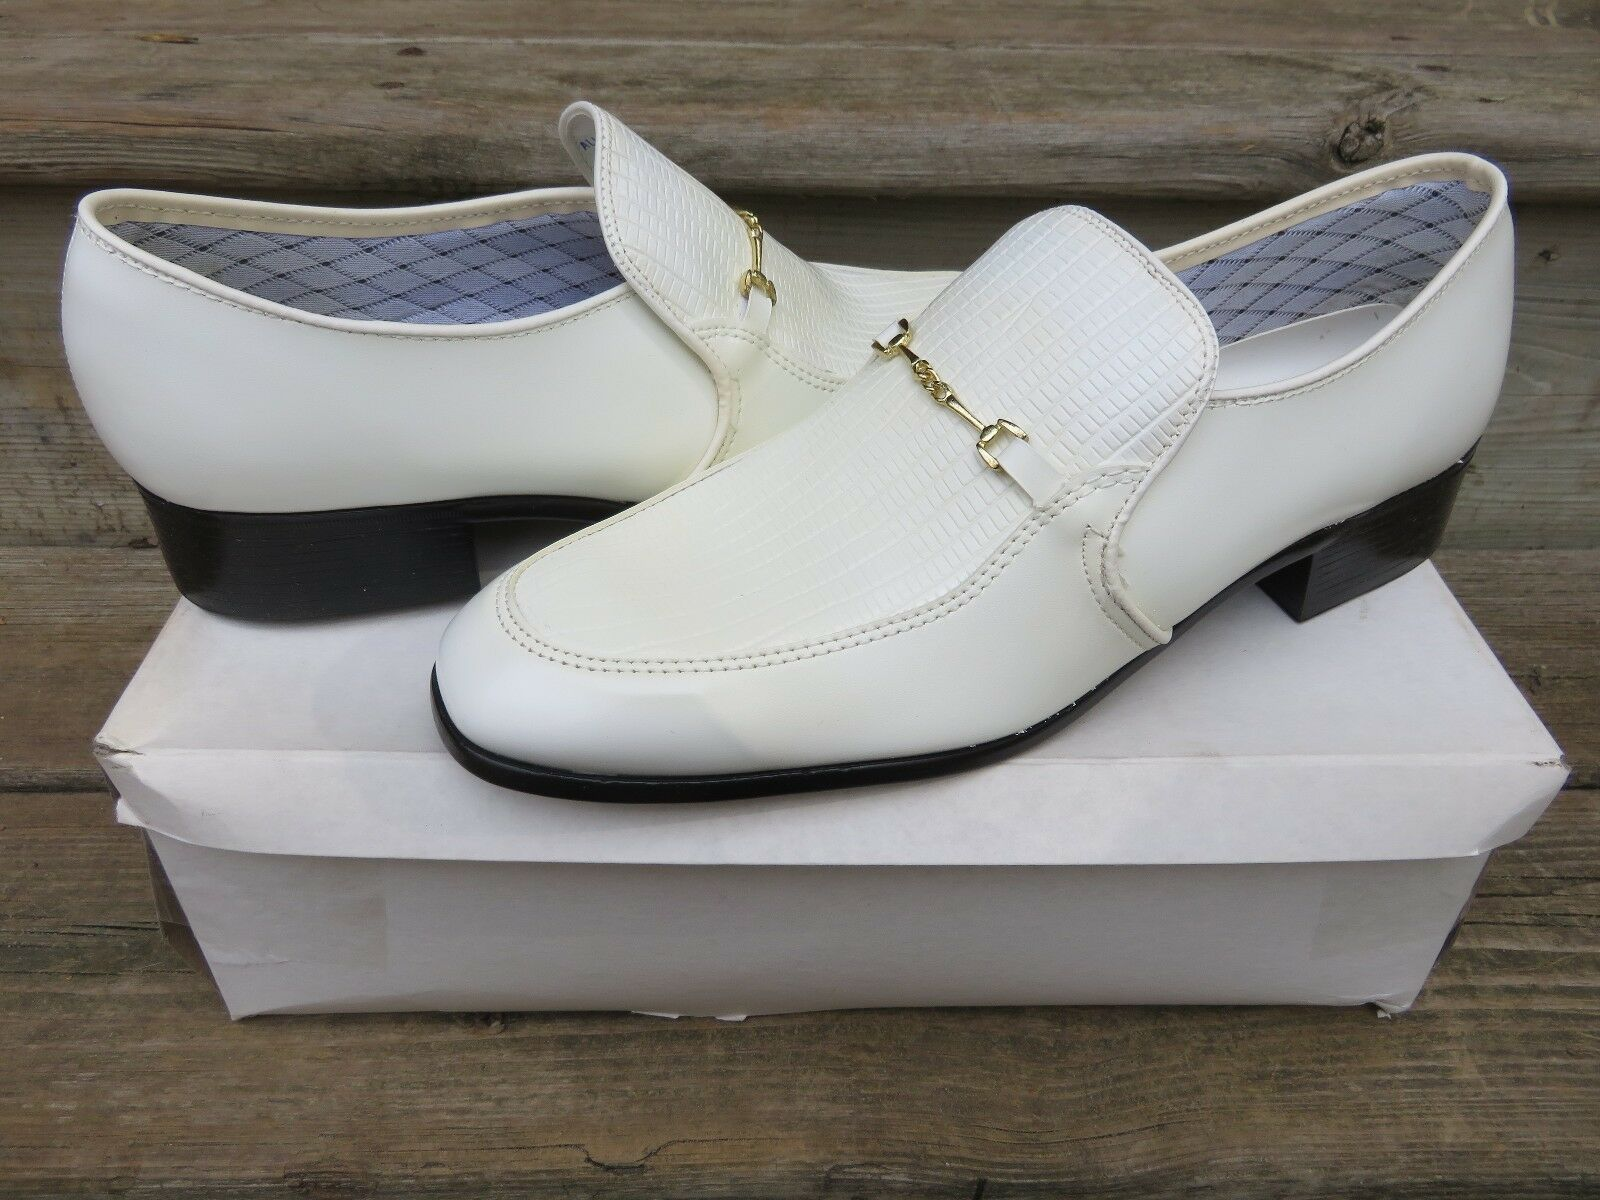 NEW JB Clasp Slip-on Loafer Dress Shoes Size 10 M New Old Stock White Leather